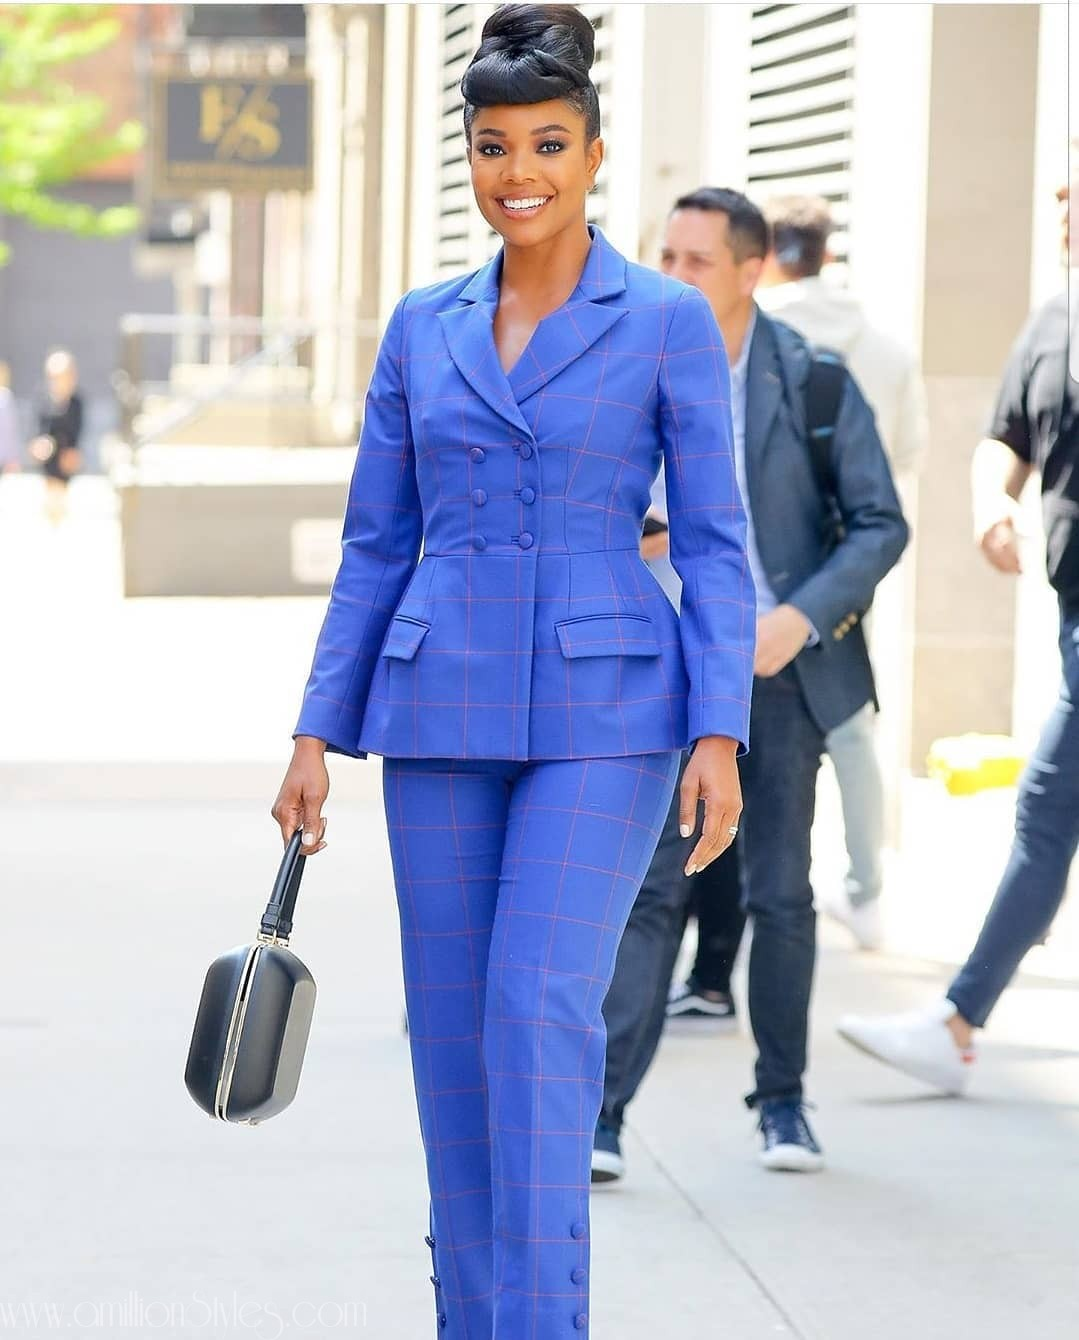 Slay In The Best Corporate Styles This Thursday